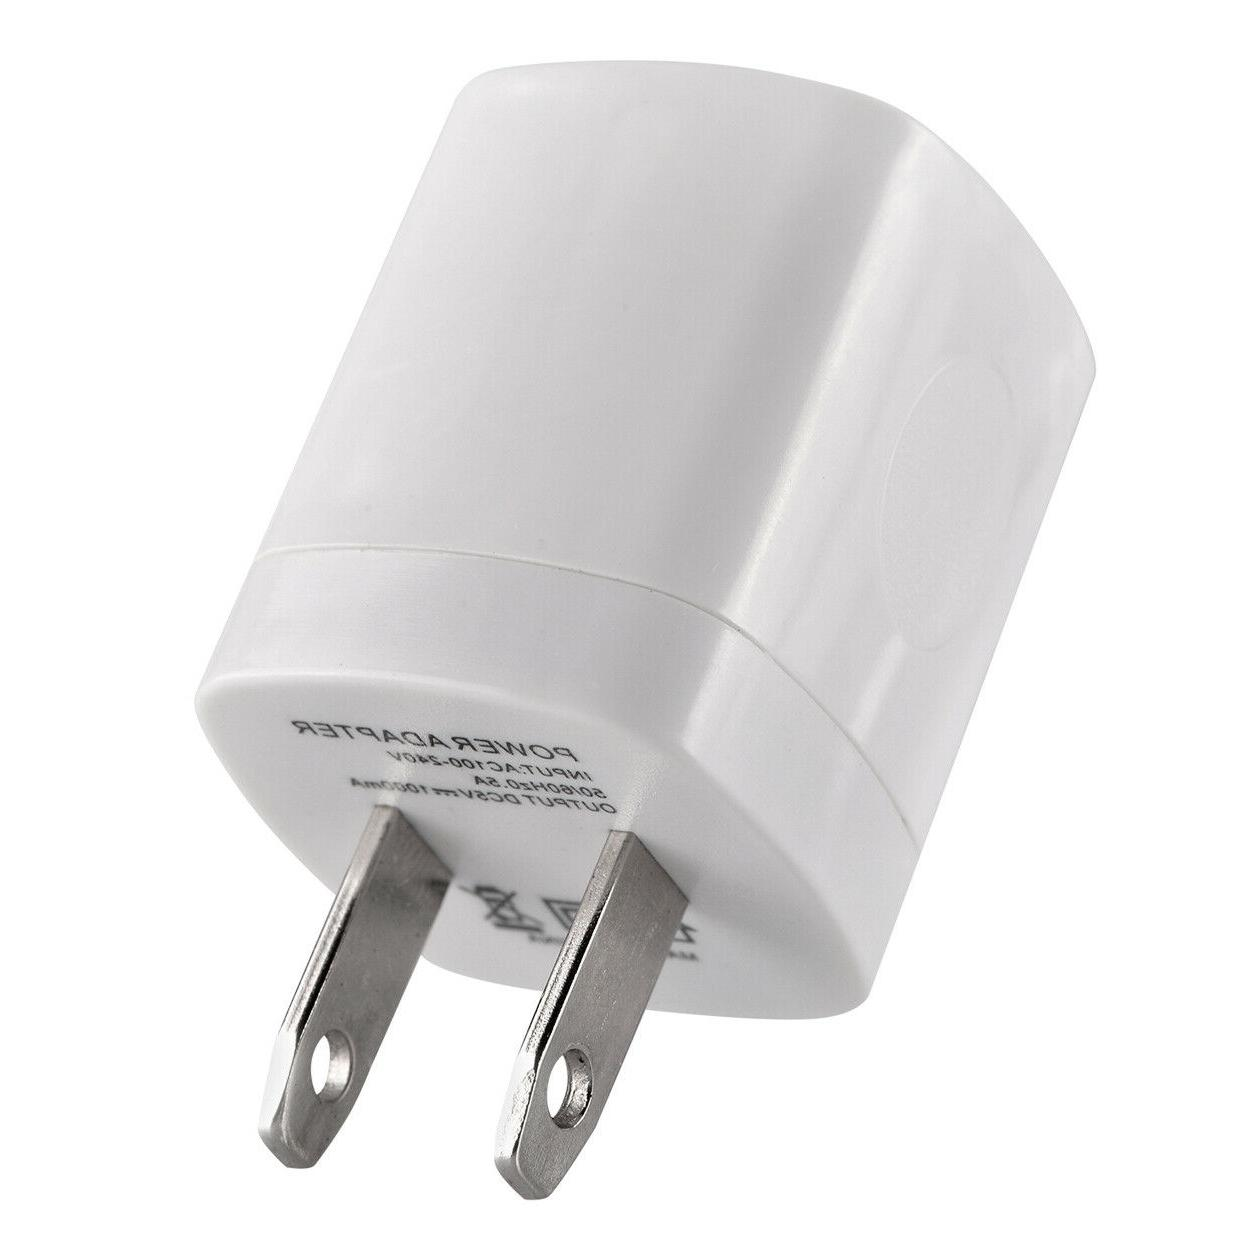 2x Power Adapter Wall Charger US FOR 7 8